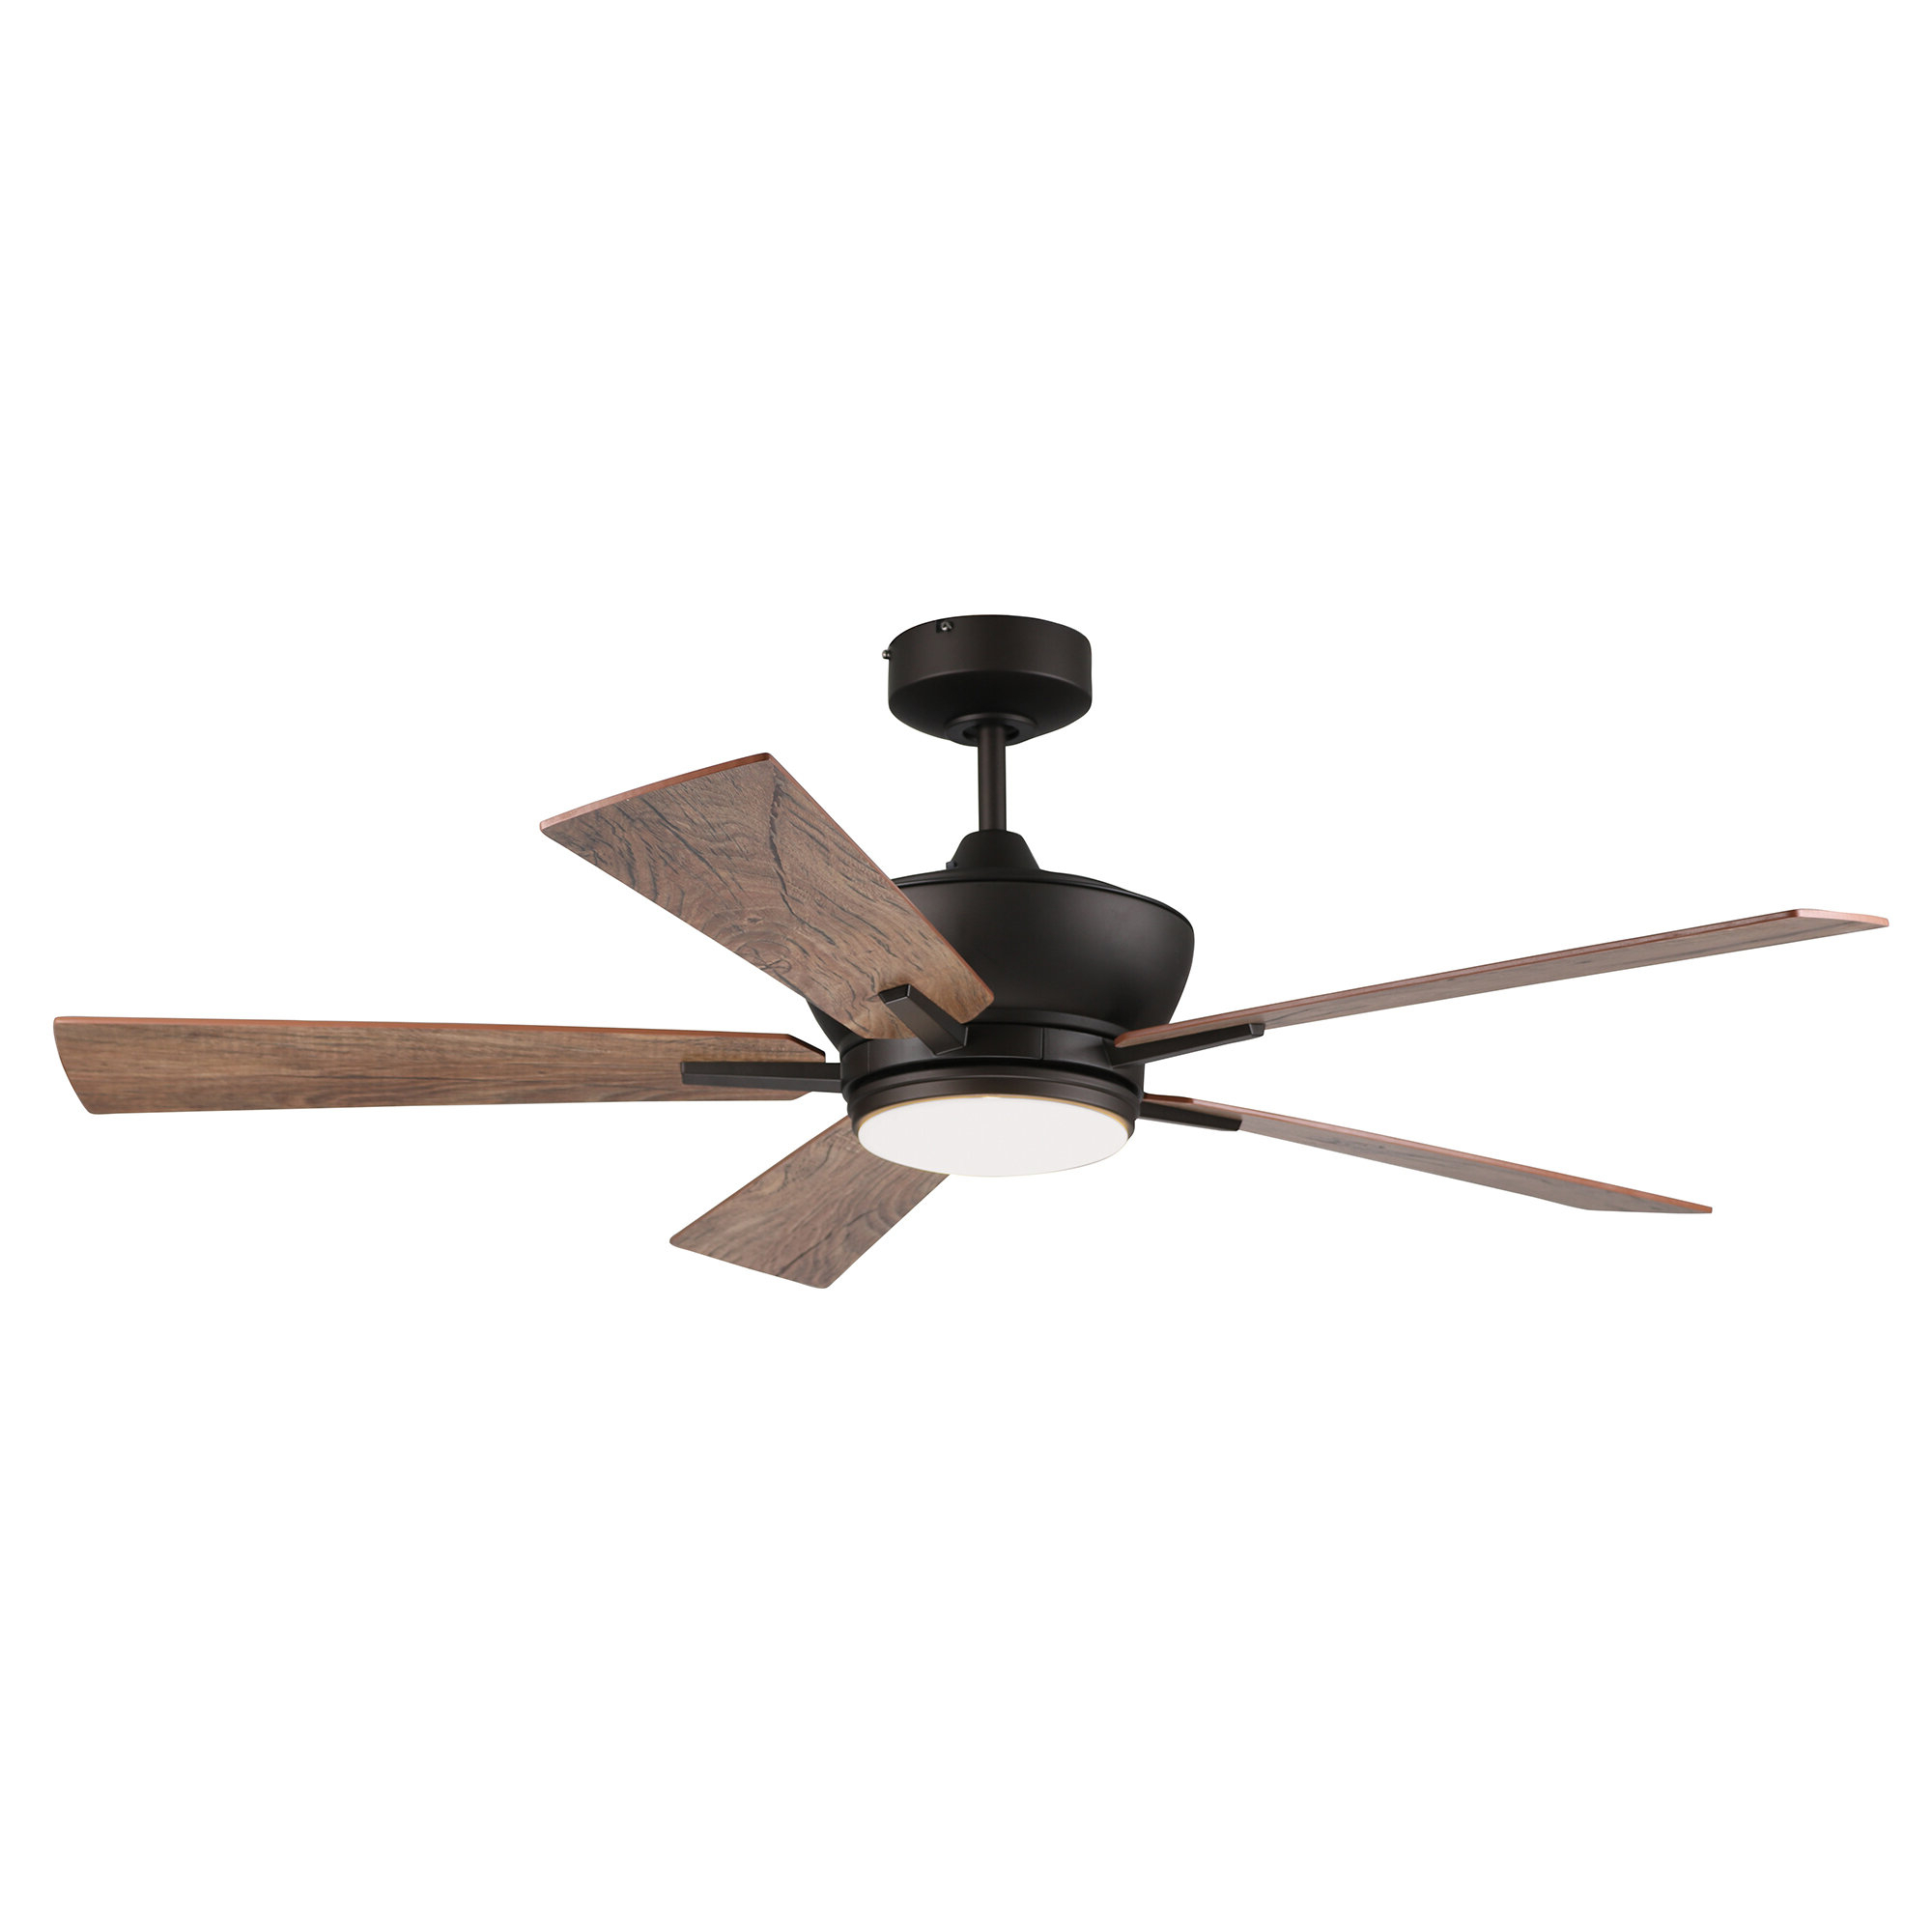 "Wilburton 3 Blade Outdoor Ceiling Fans Intended For Well Known 52"" Georgetown Tri Mount 5 Blade Ceiling Fan With Remote, Light Kit Included (View 5 of 20)"